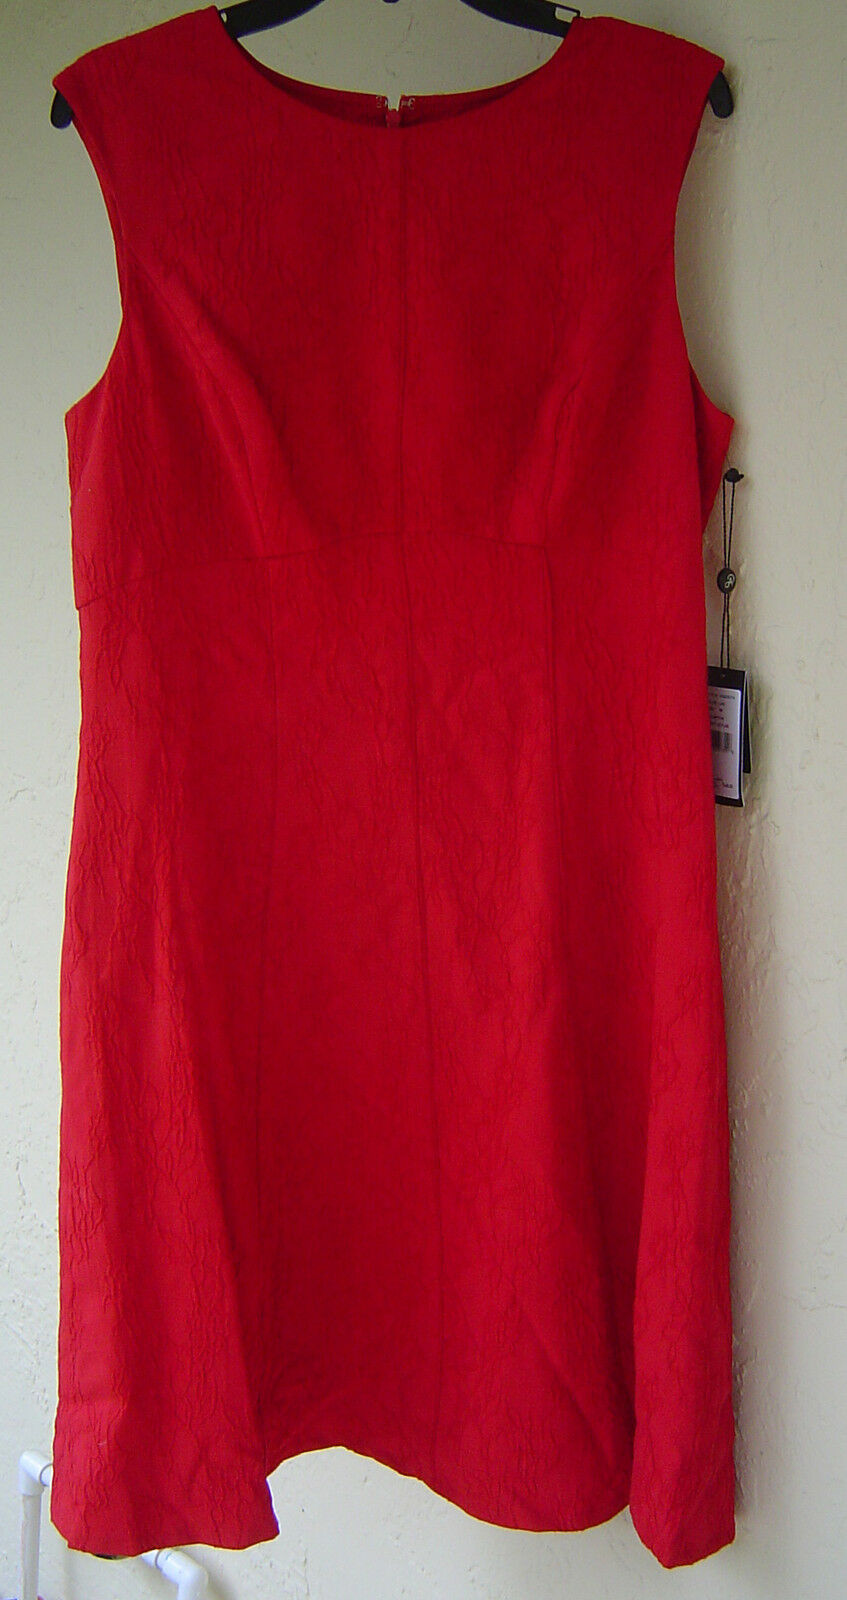 NWT ADRIANNA PAPELL RED EMPIRE WAIST LINED DRESS SIZE 14